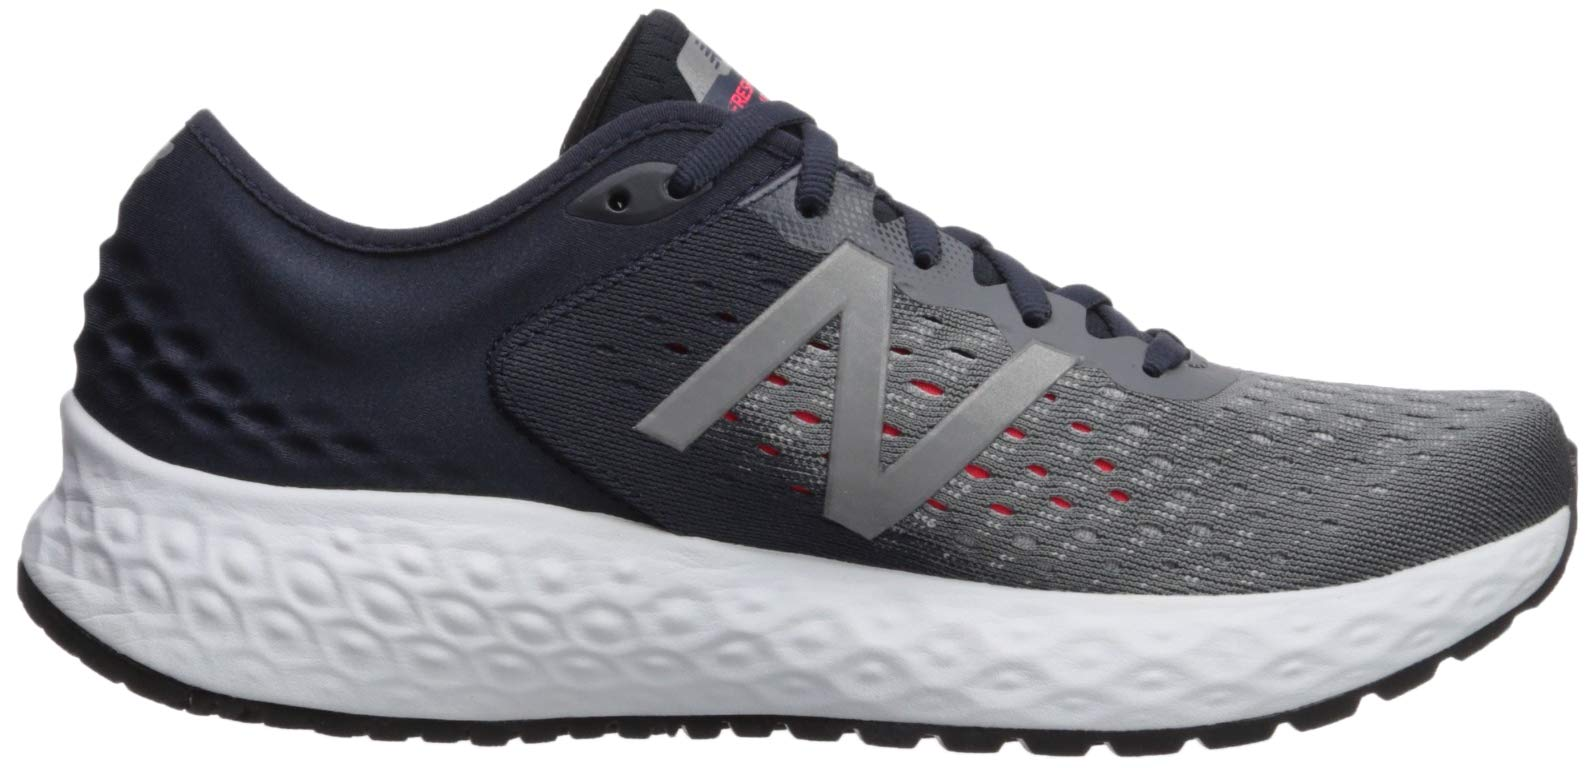 New Balance Men's 1080v9 Fresh Foam Running Shoe, Gunmetal/Outerspace/Energy red, 7 D US by New Balance (Image #7)